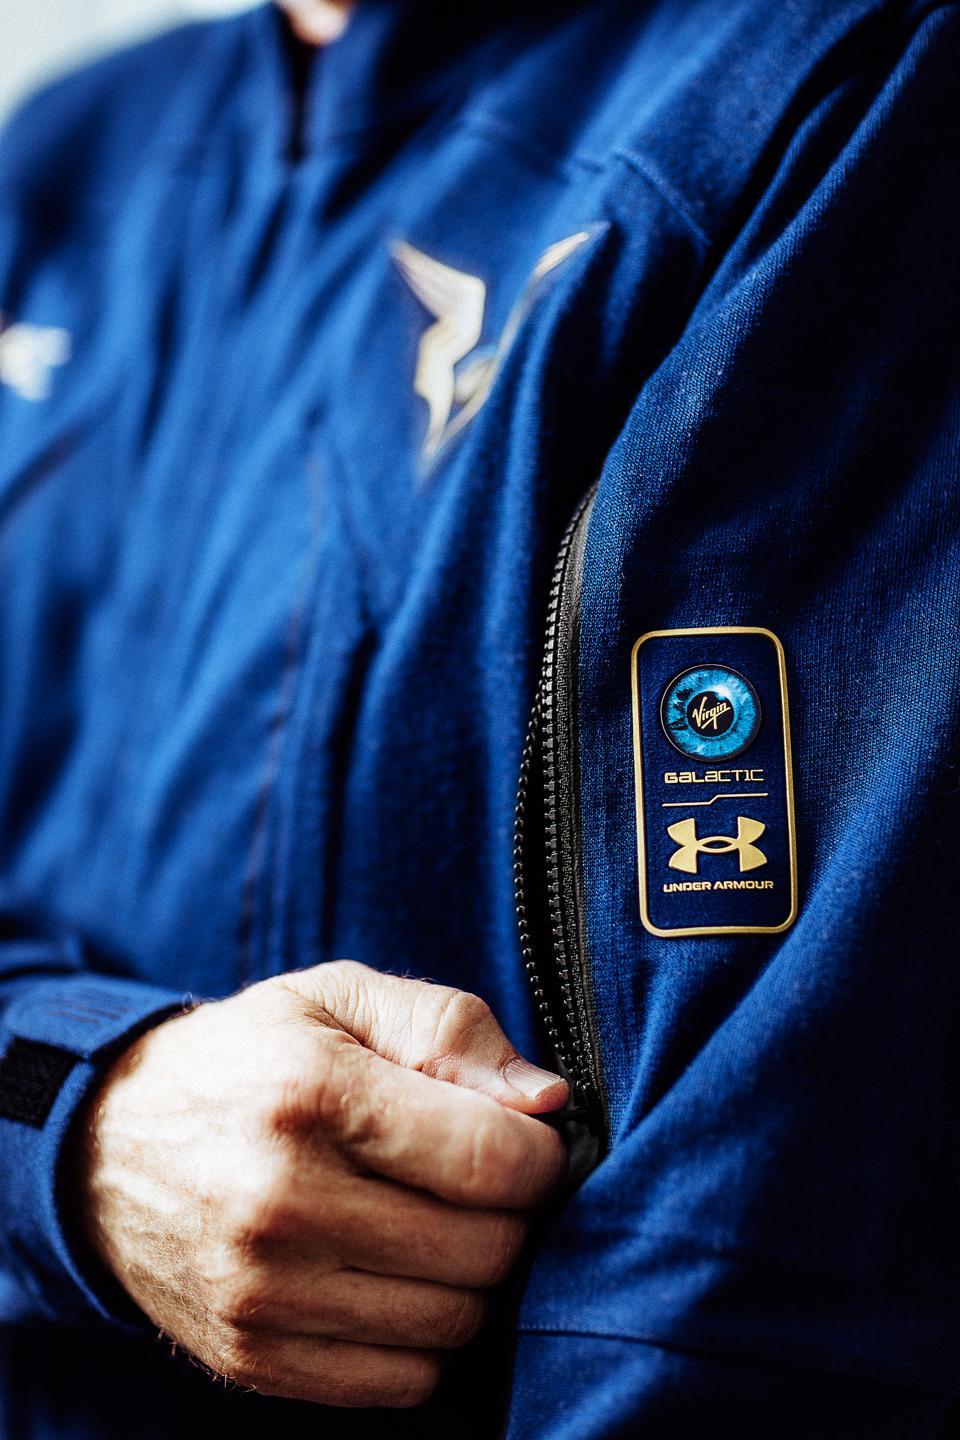 A pilot zips up a pocket on the sleeve of their space suit.